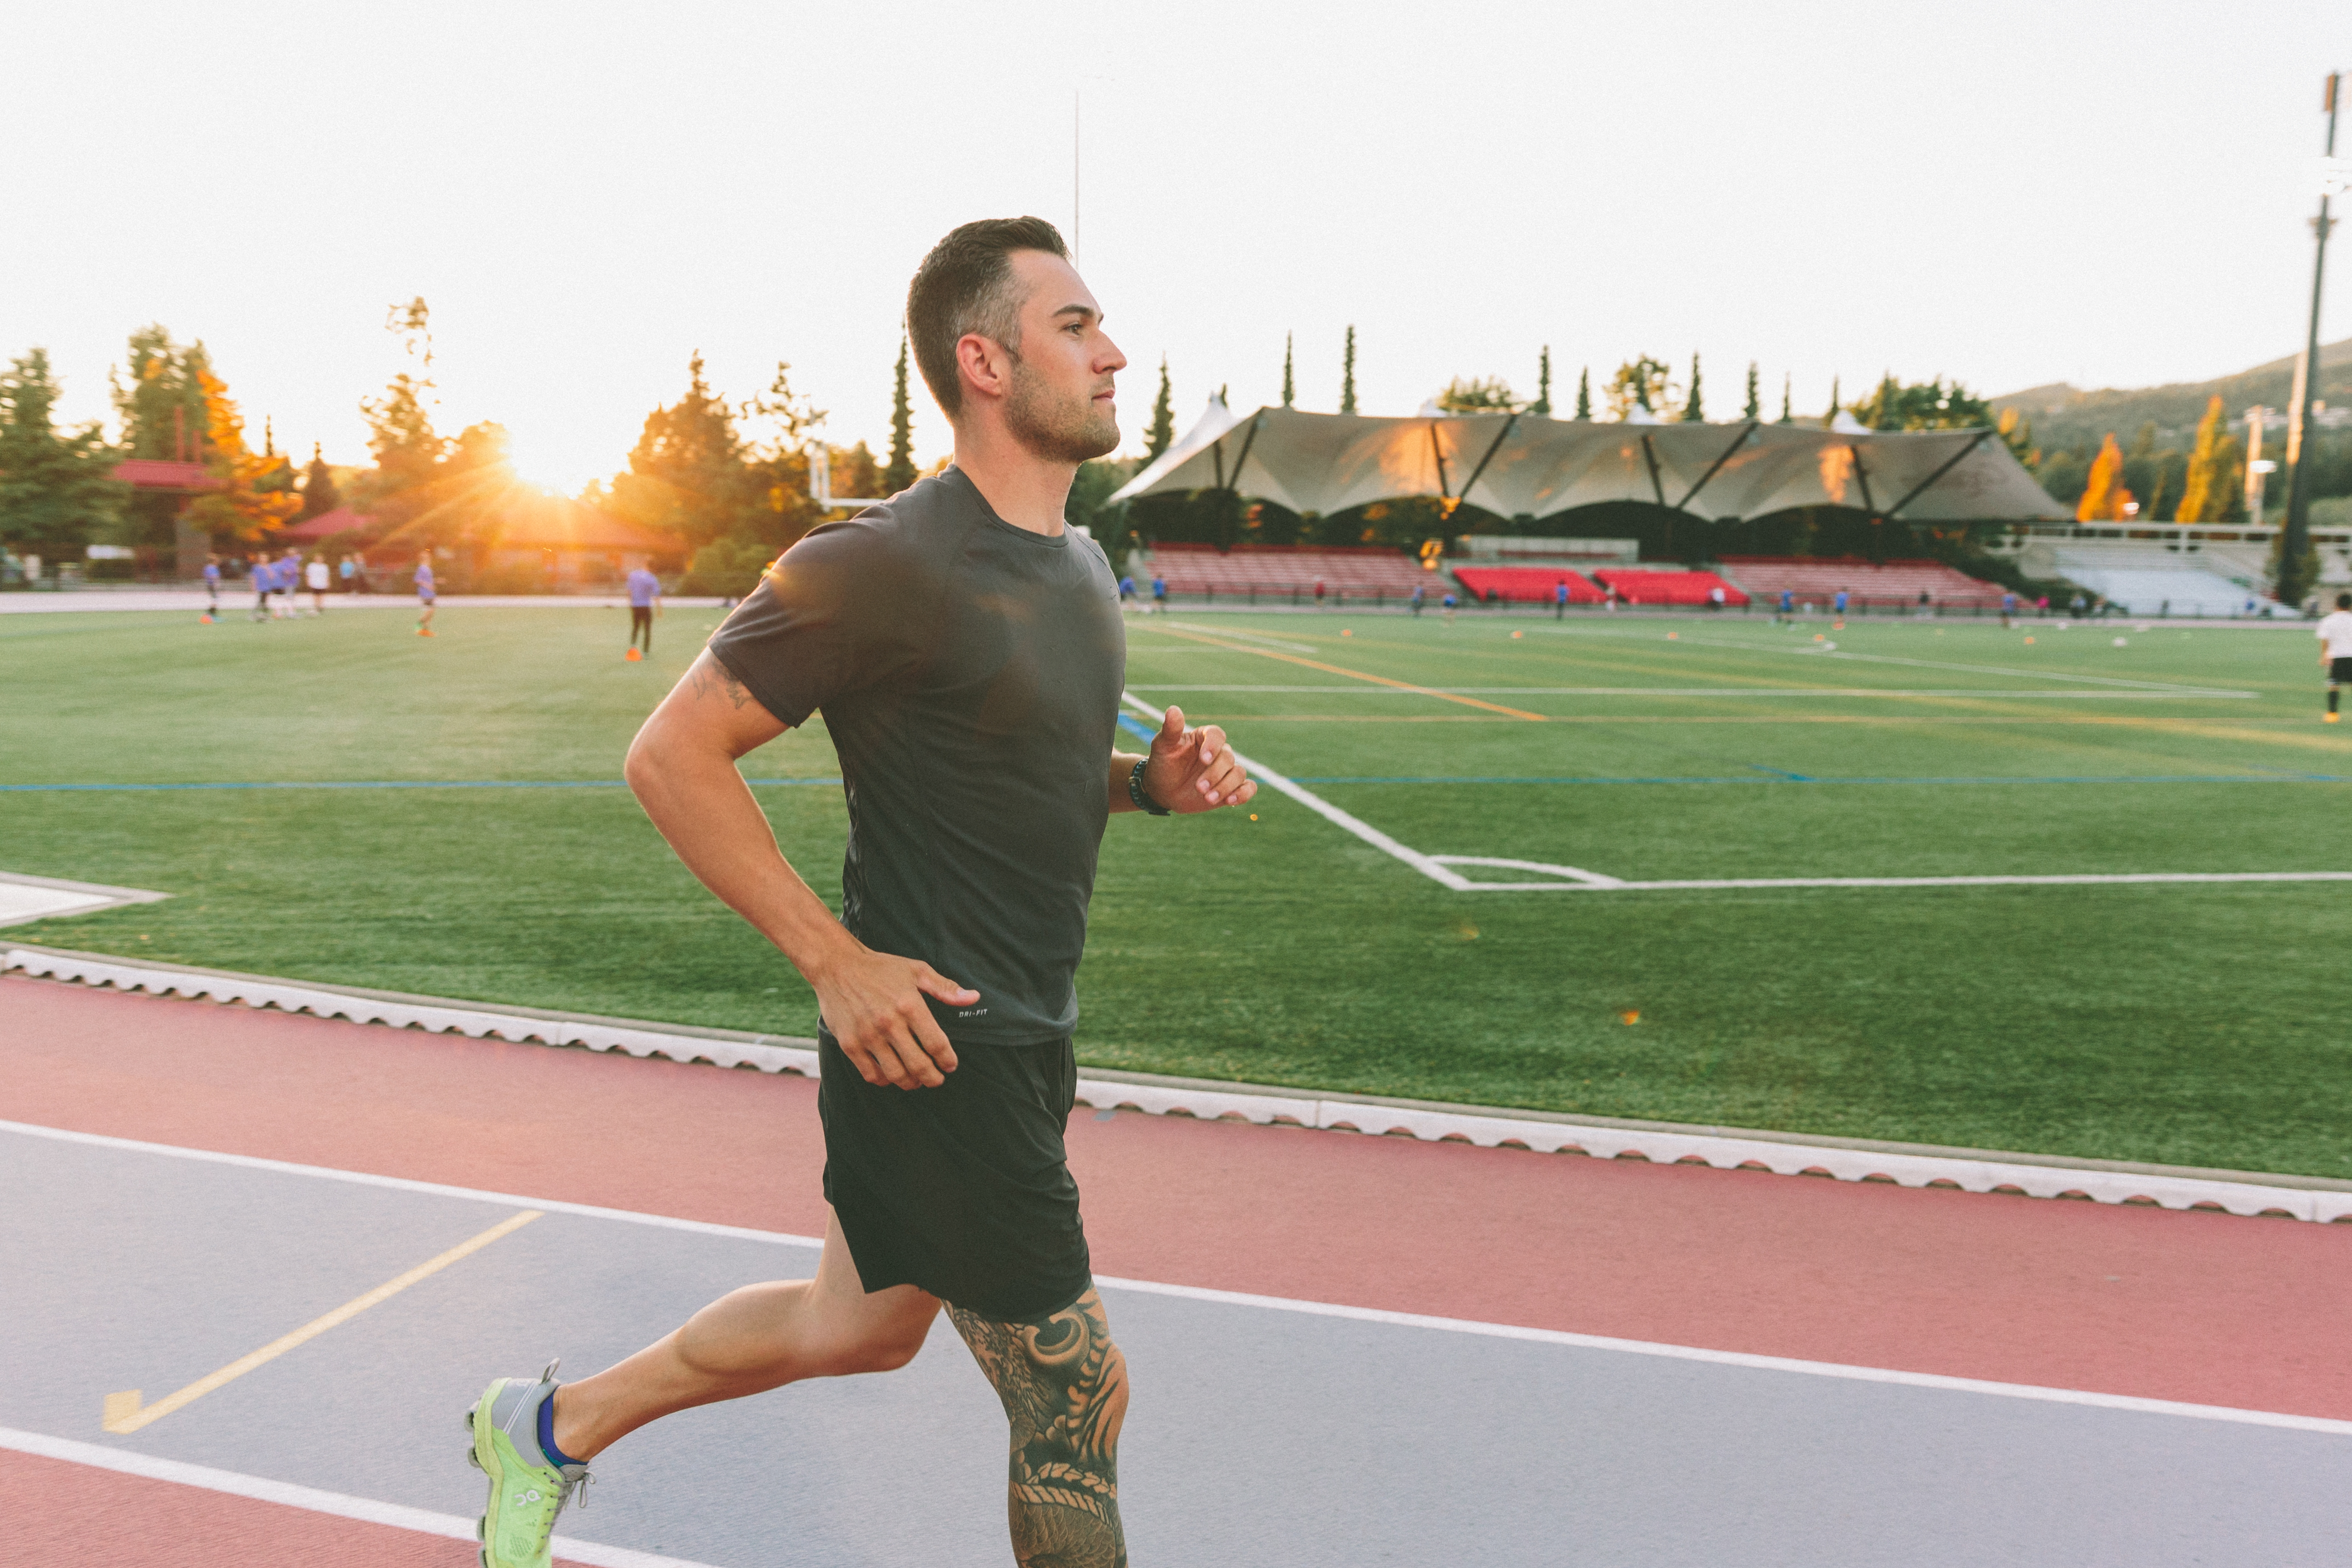 sunset-running-determination-track-man-training-fitness-work-out-active-golden-hour_t20_BlpYw9